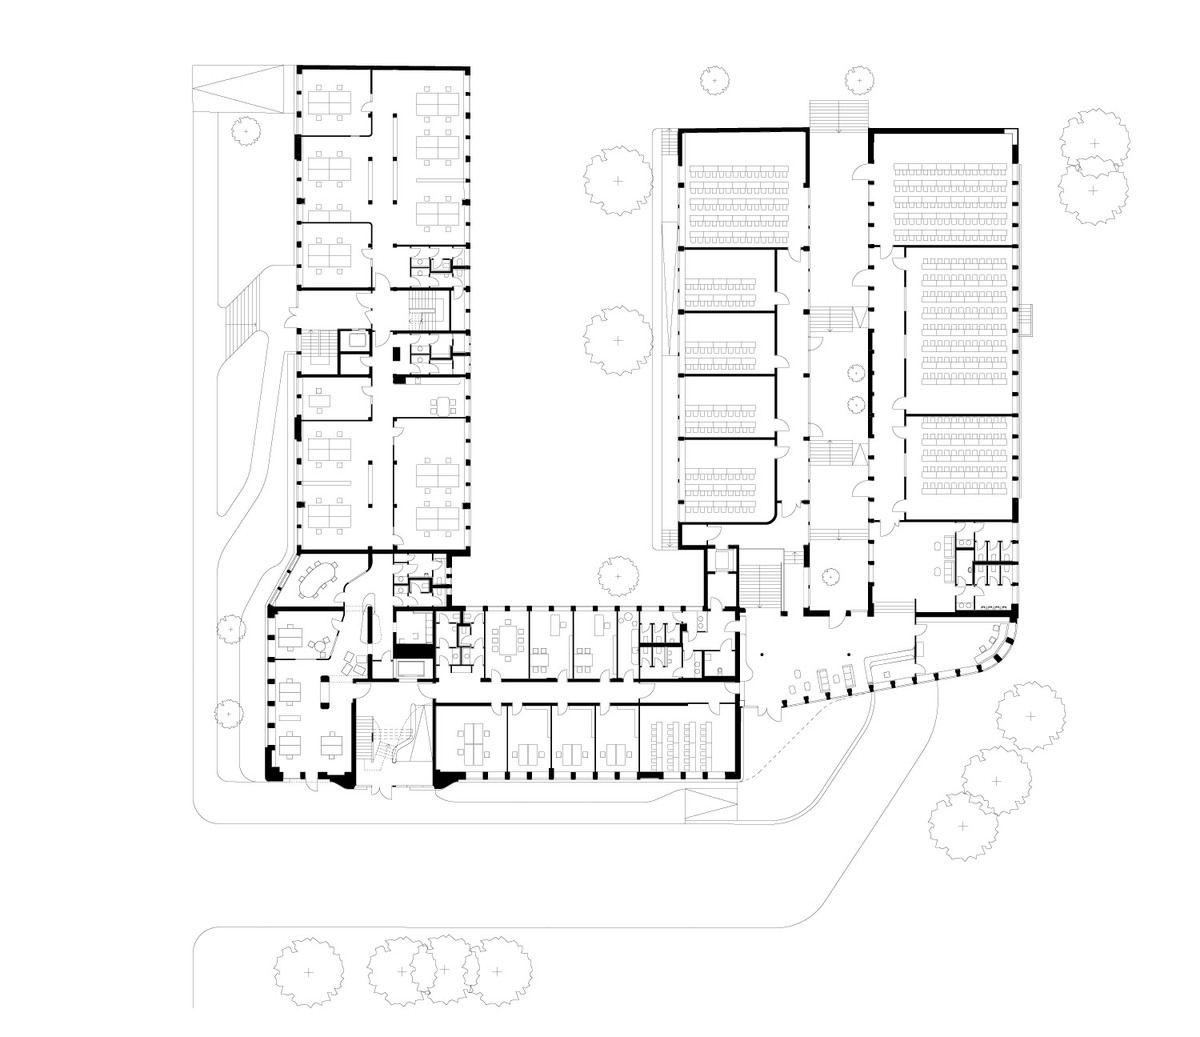 Floor plan, 0 (Image: J. Mayer H. Architekten)